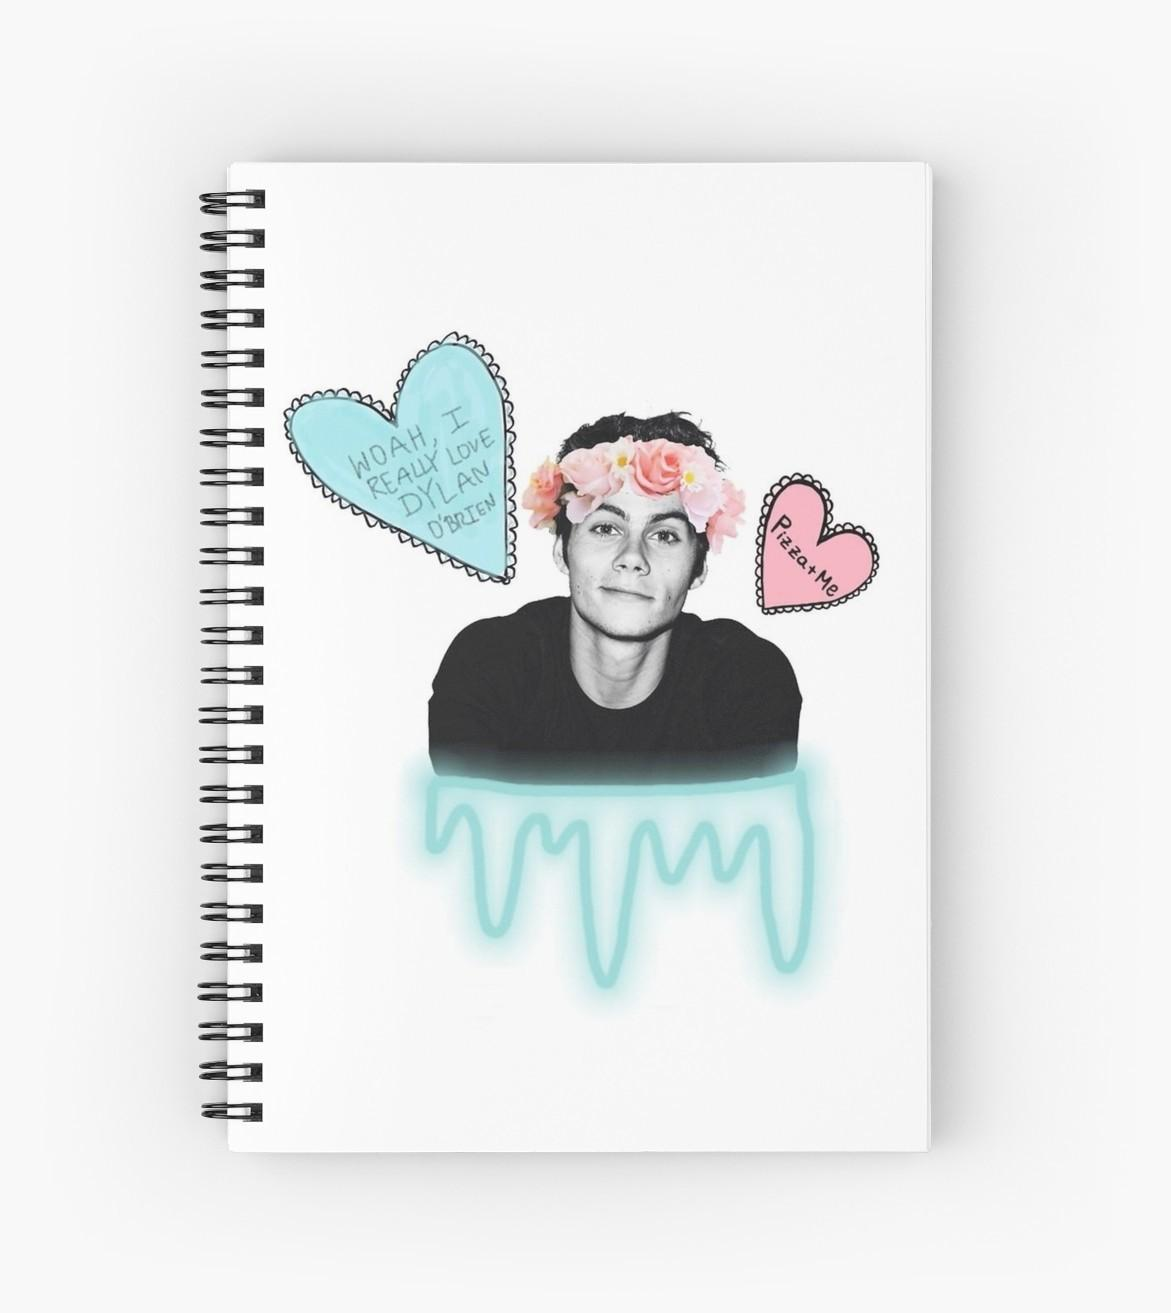 Dylan Brien Tumblr Design Spiral Notebooks